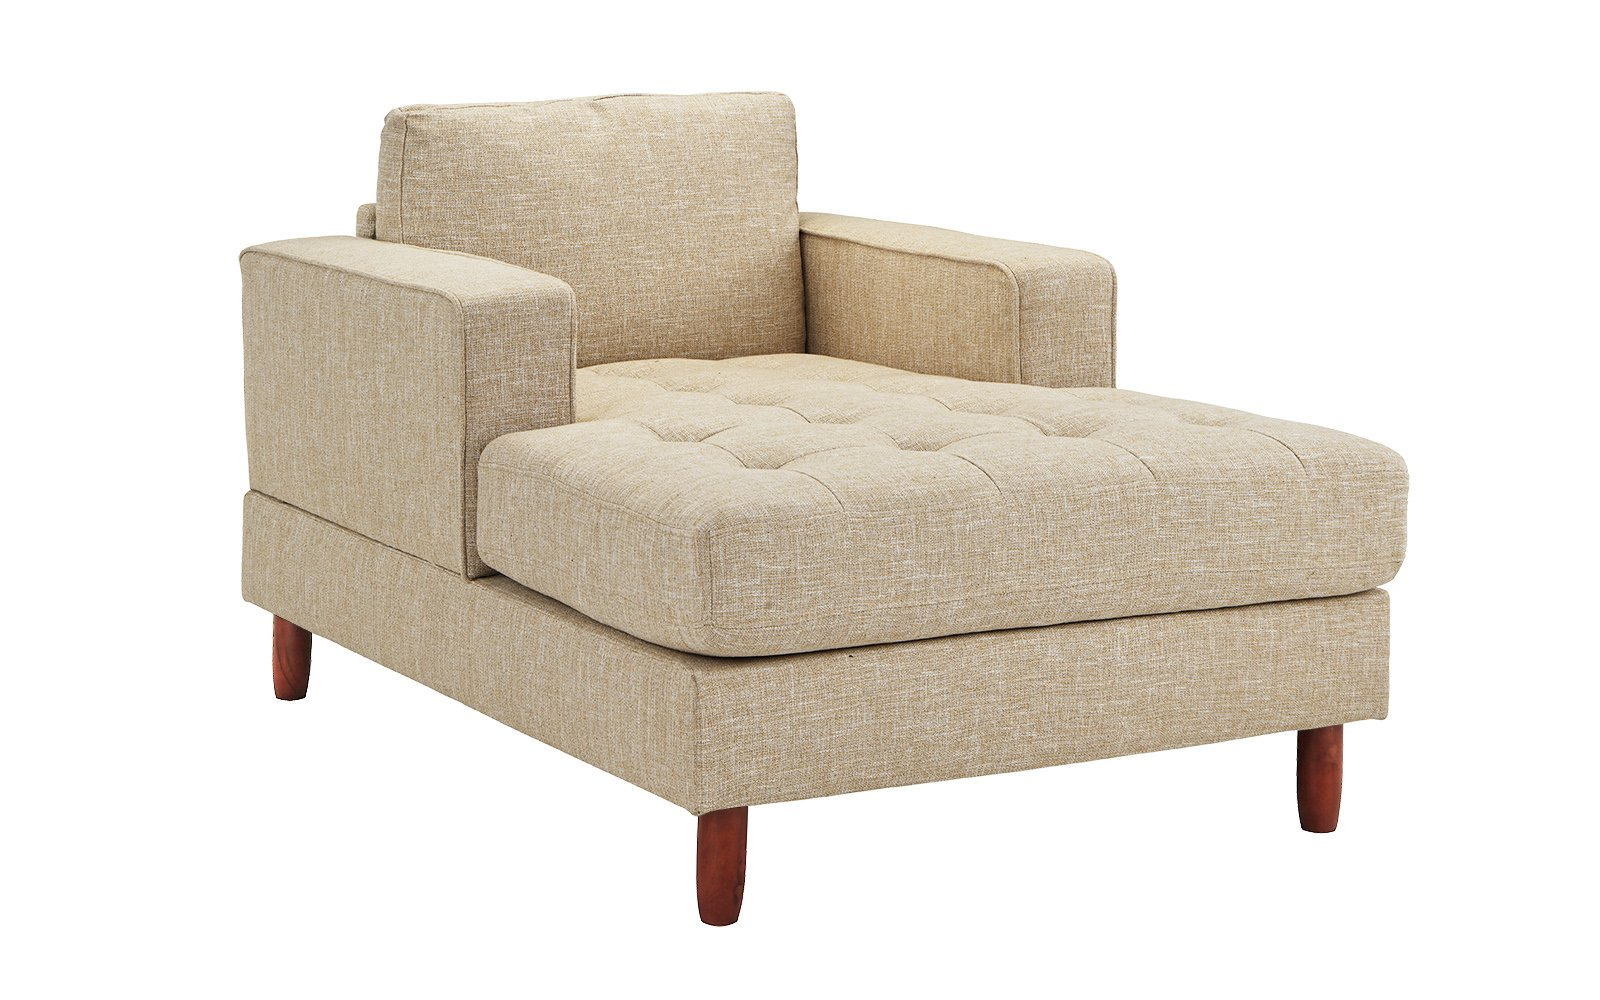 Mid Century Modern Linen Fabric Living Room Chaise Lounge